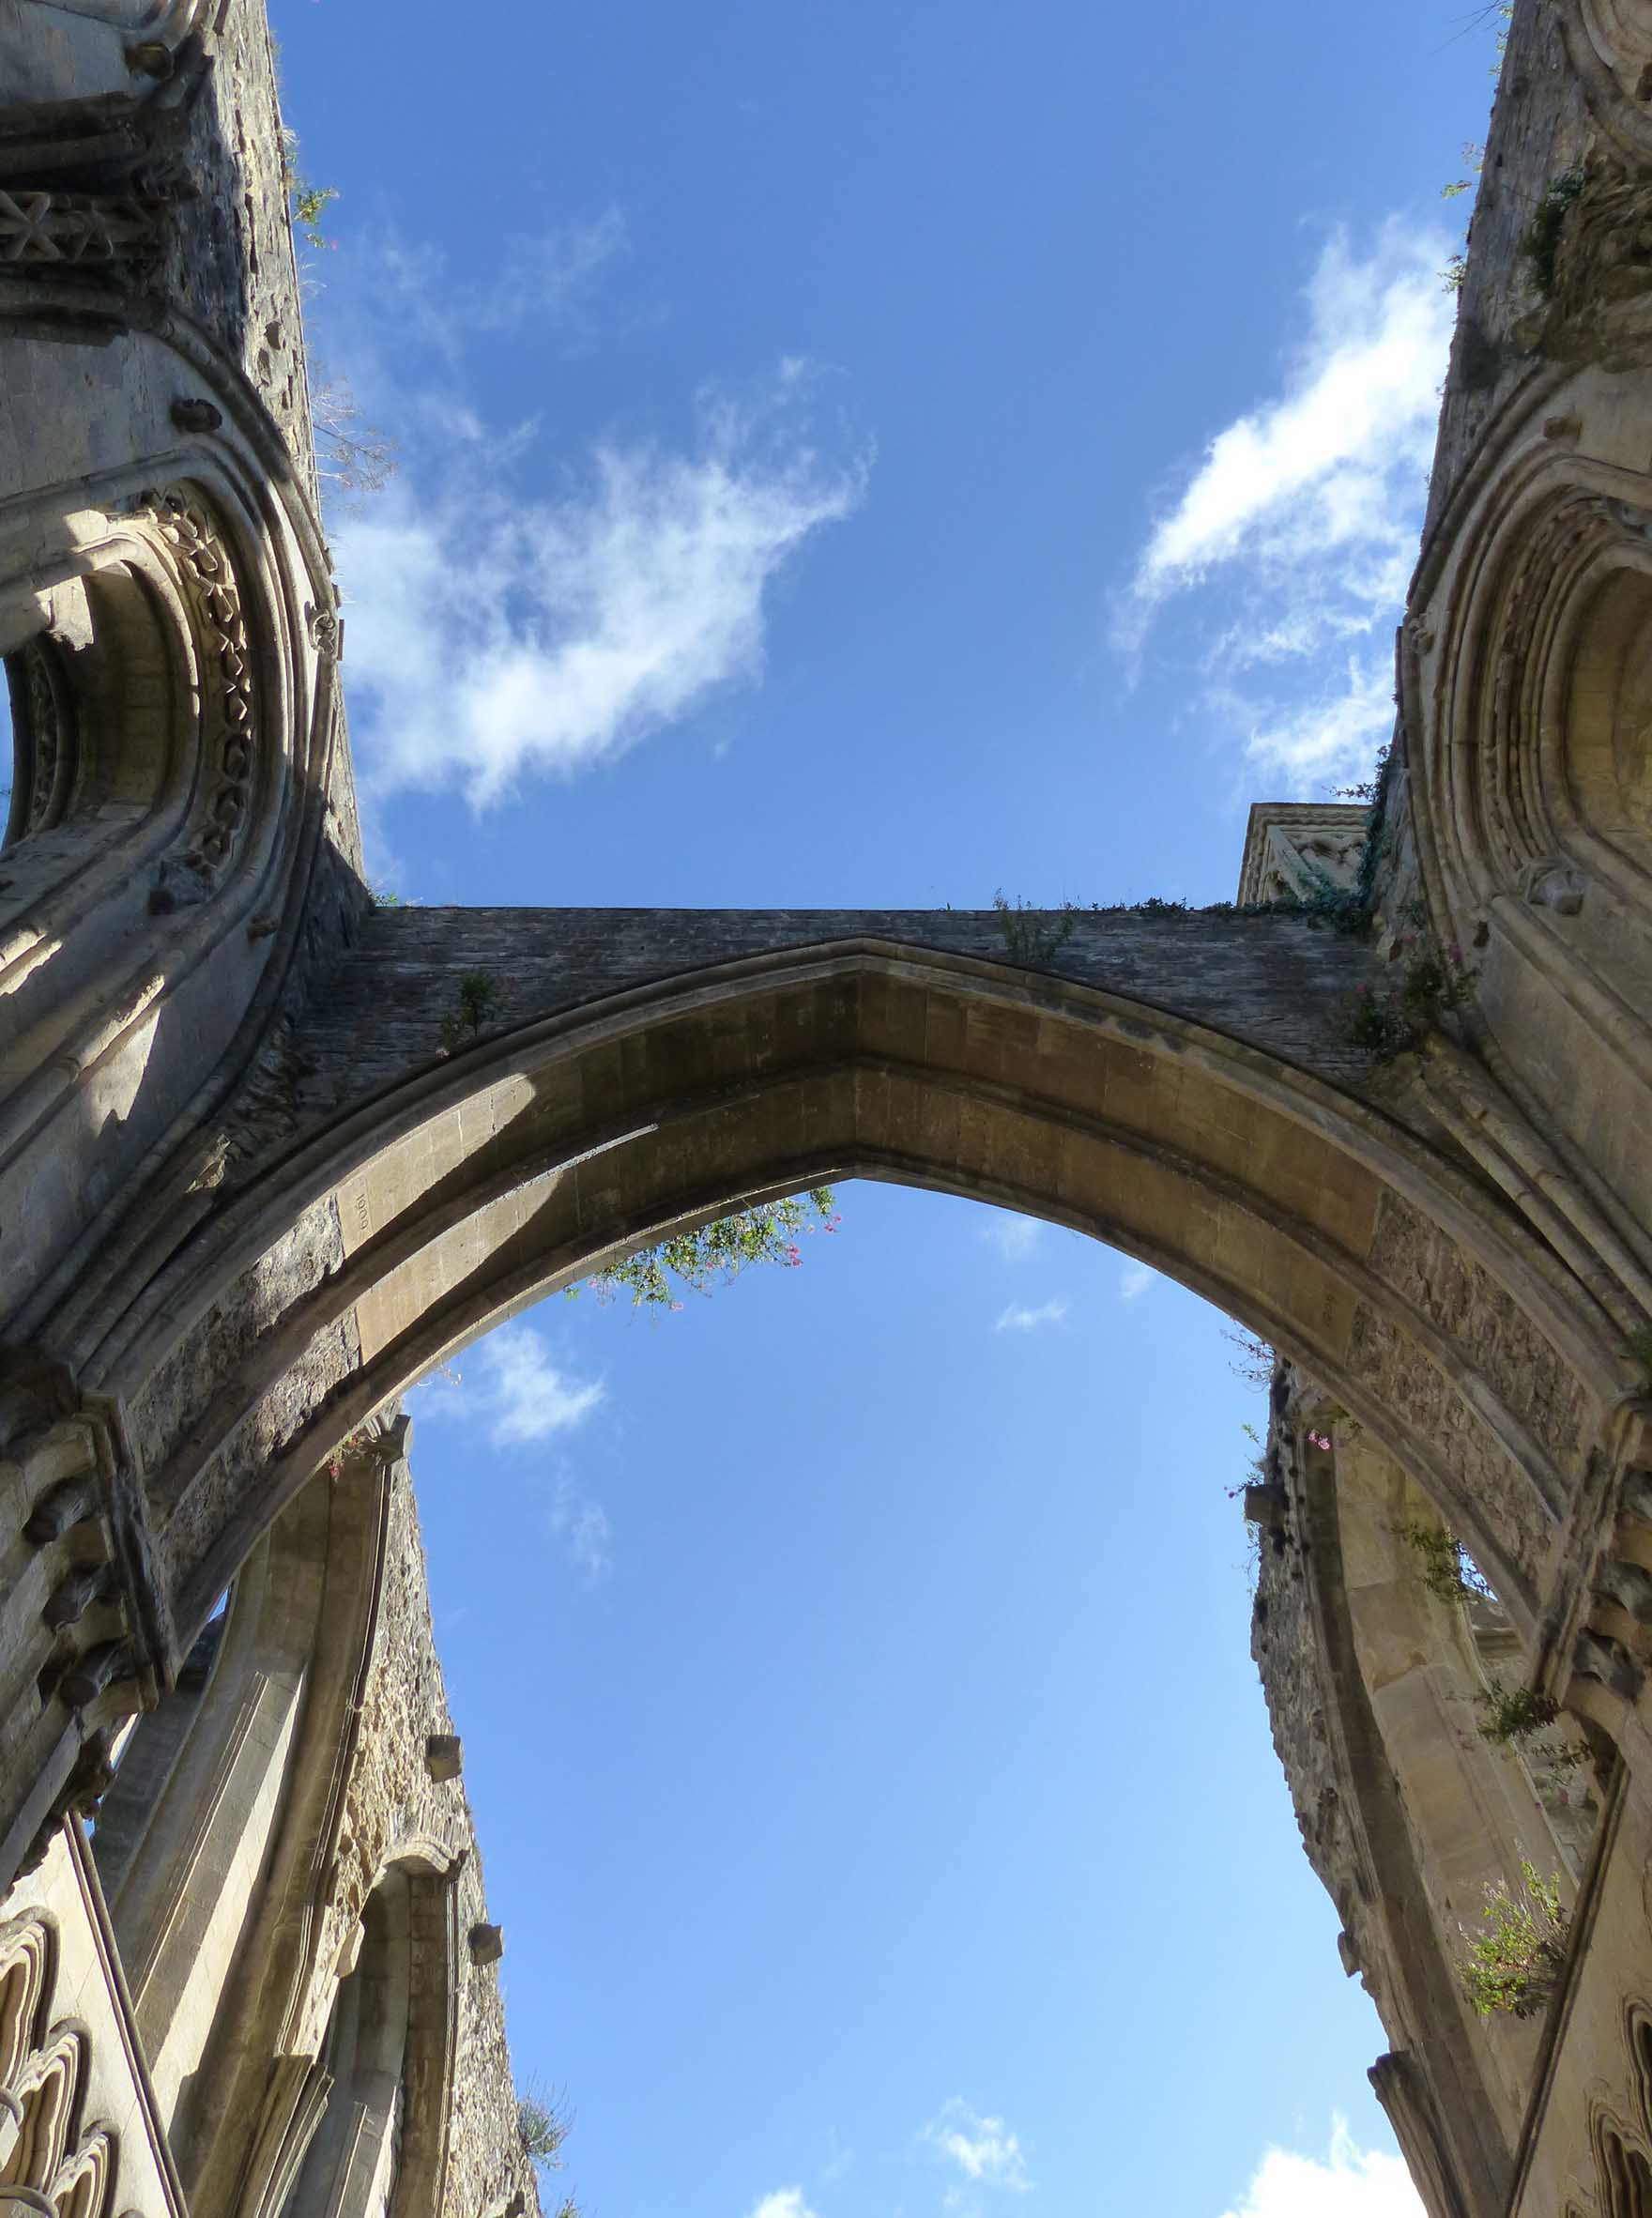 Looking up at the sky from inside ruins